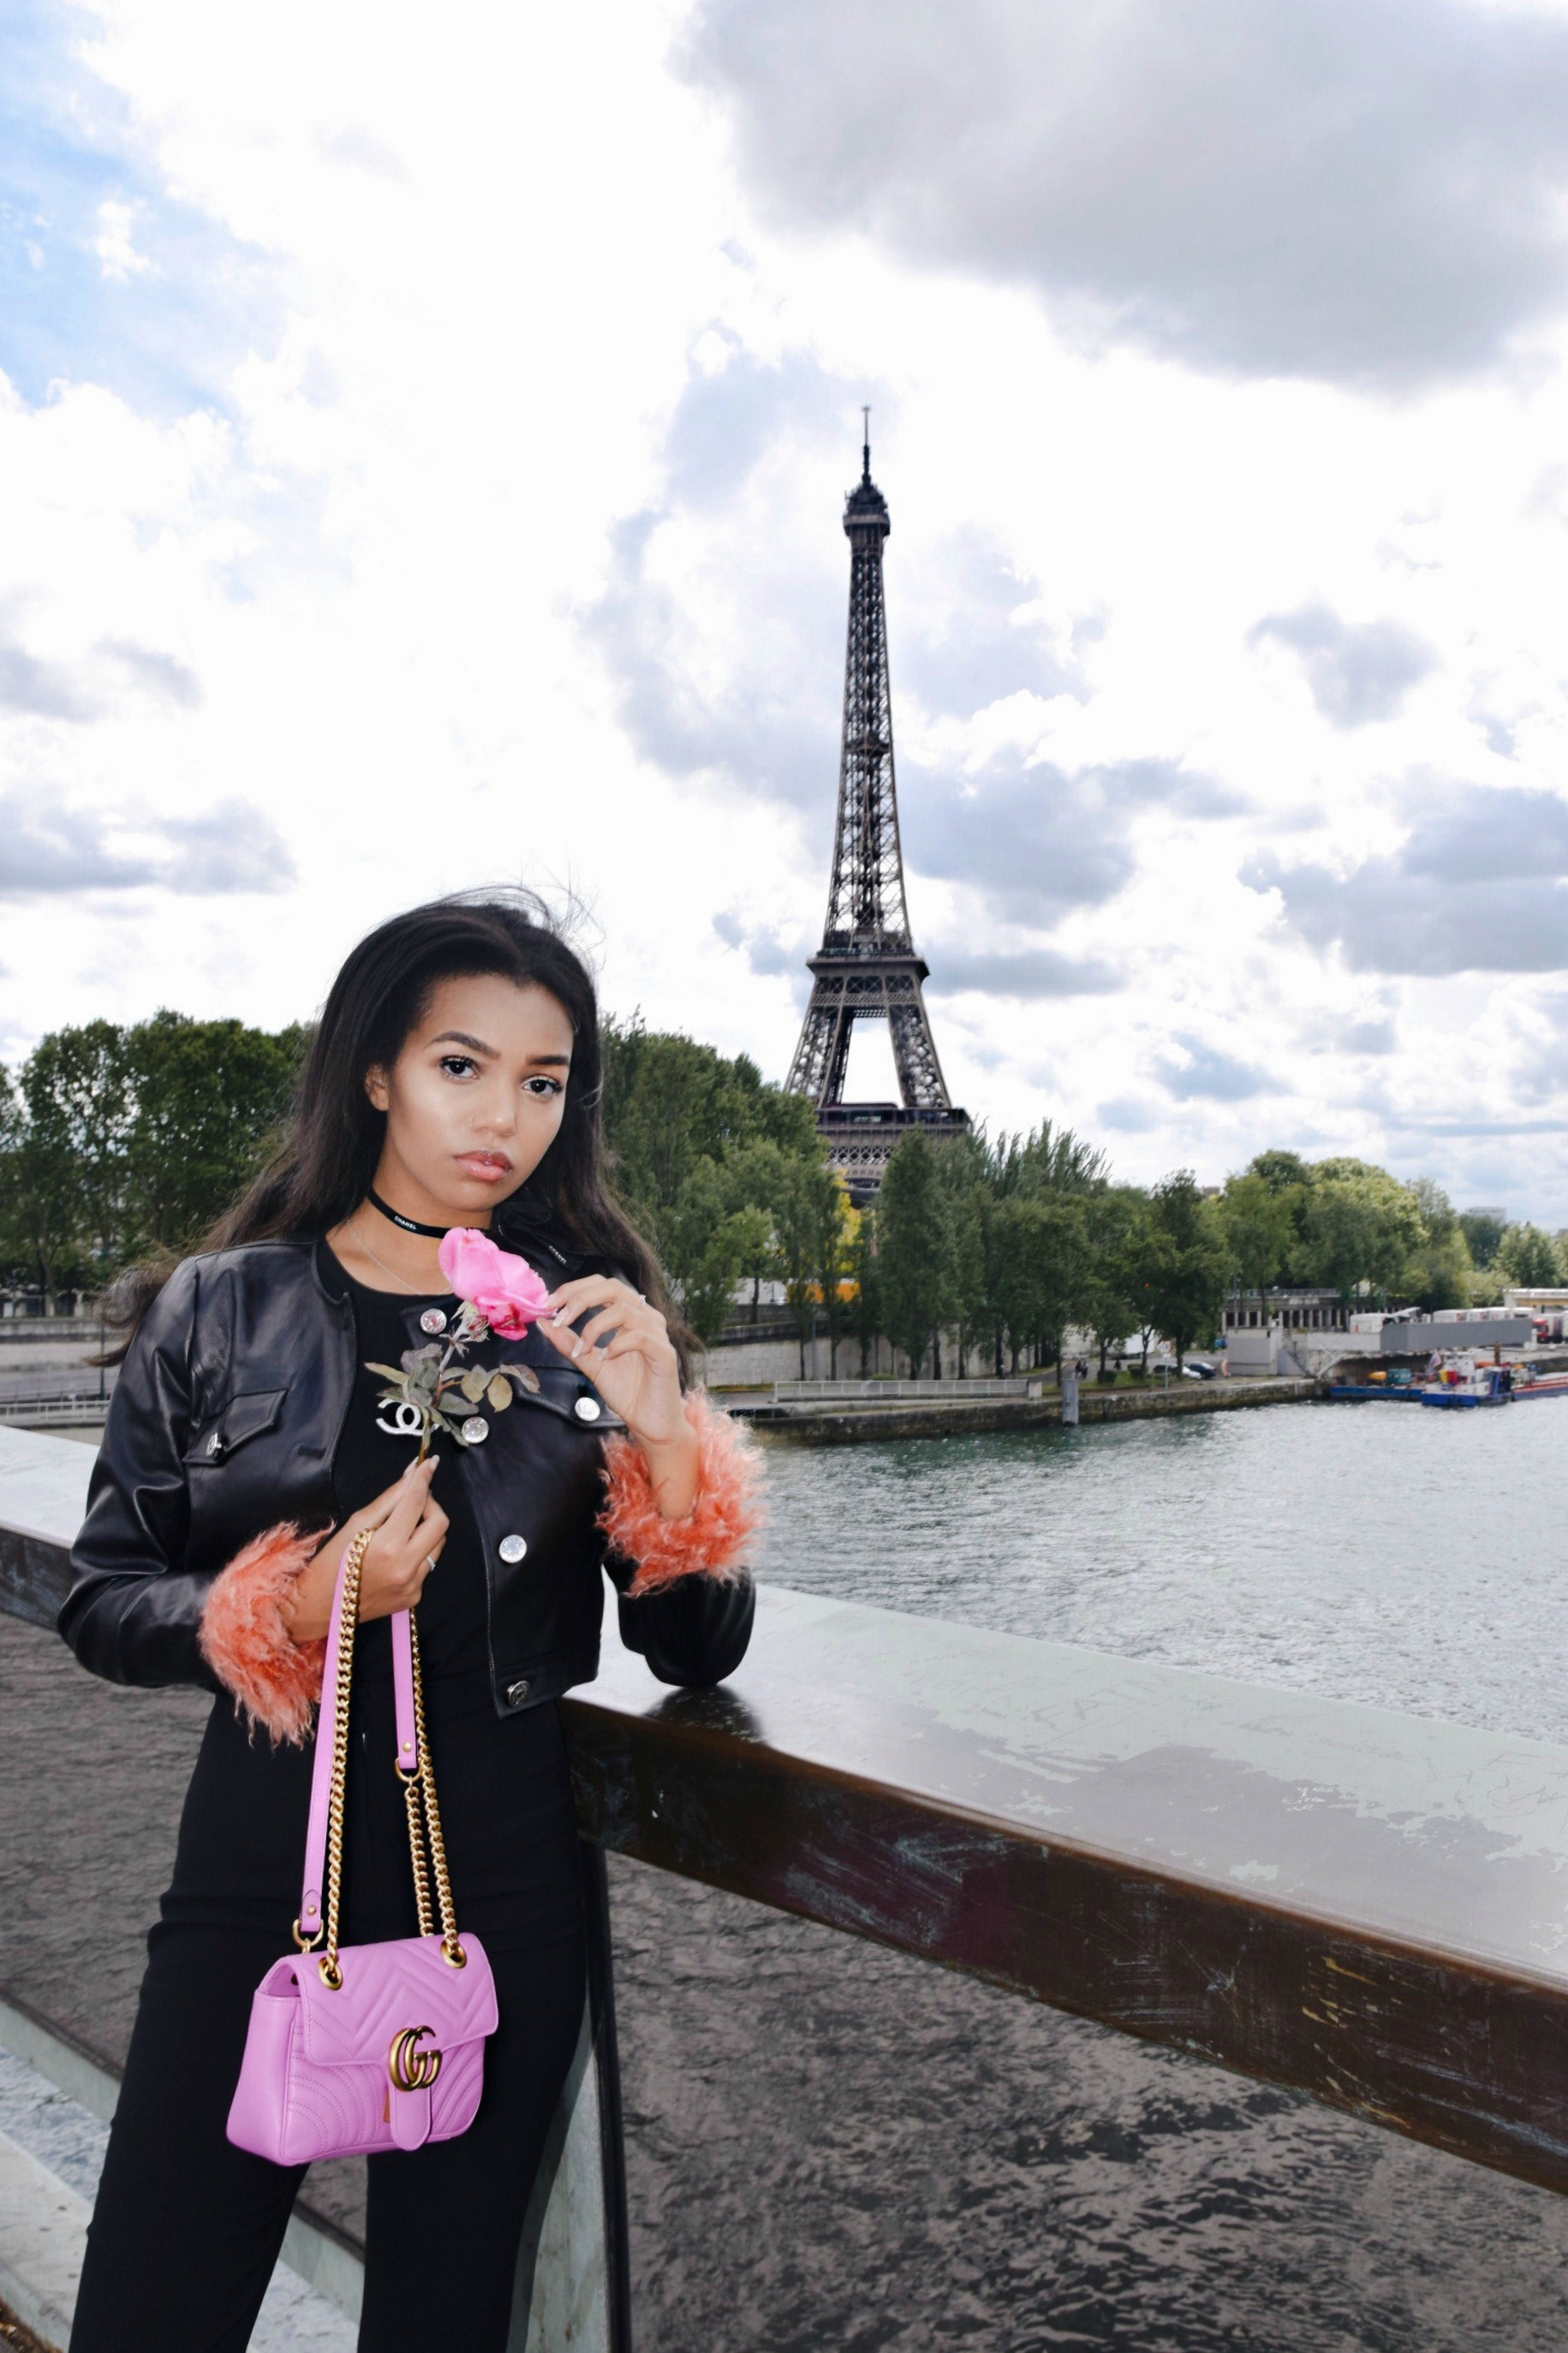 On Top Of The Tour // Paris Travel Diary, The Top Of The Eiffel Tower // Vintage Chanel T-shirt // Pixie Market Oversized Flair Pants // Pink Gucci Marmont Bag // Chanel Ribbon Choker // Pink Fun Faux Fur // Los Angeles Fashion Blogger Daphne Blunt // Spring Street Style // Views From The Eiffel Tower: To Style, With Love